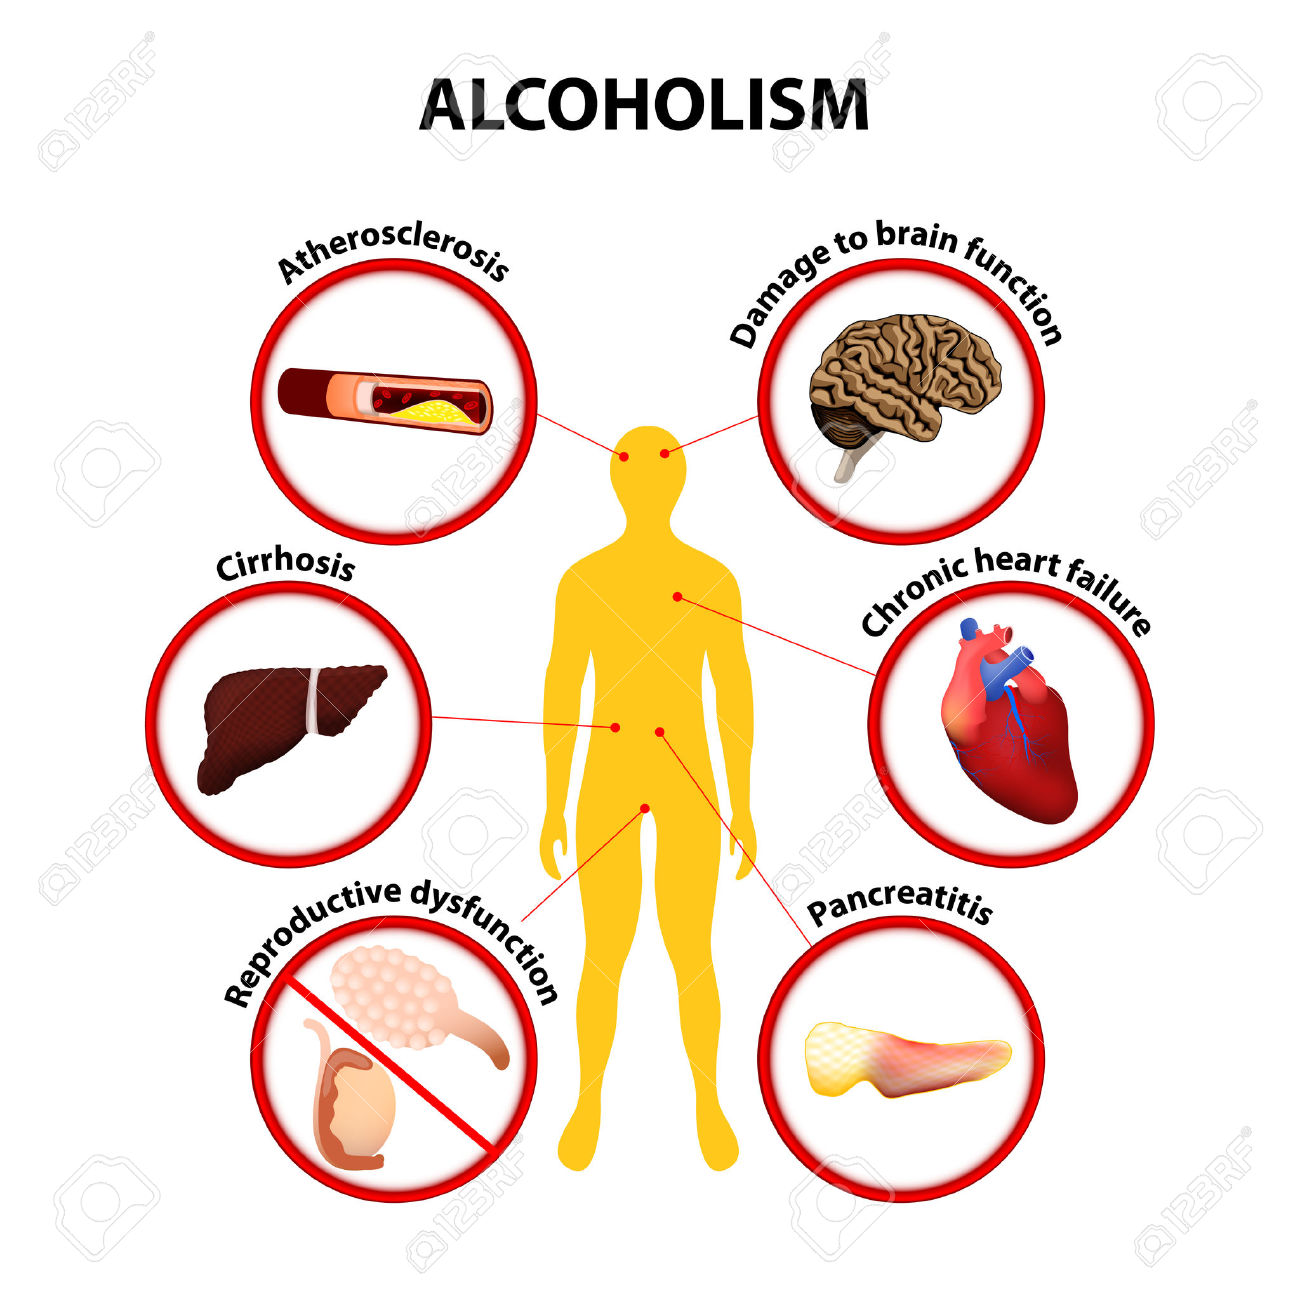 health disparities in alcohol use disorder This paper reviews recent advances in alcohol research related to ethnic group disparities in alcohol consumption, disorders, consequences, and treatment use, as well as factors that may account for the disproportionate impact of alcohol on some ethnic groups.